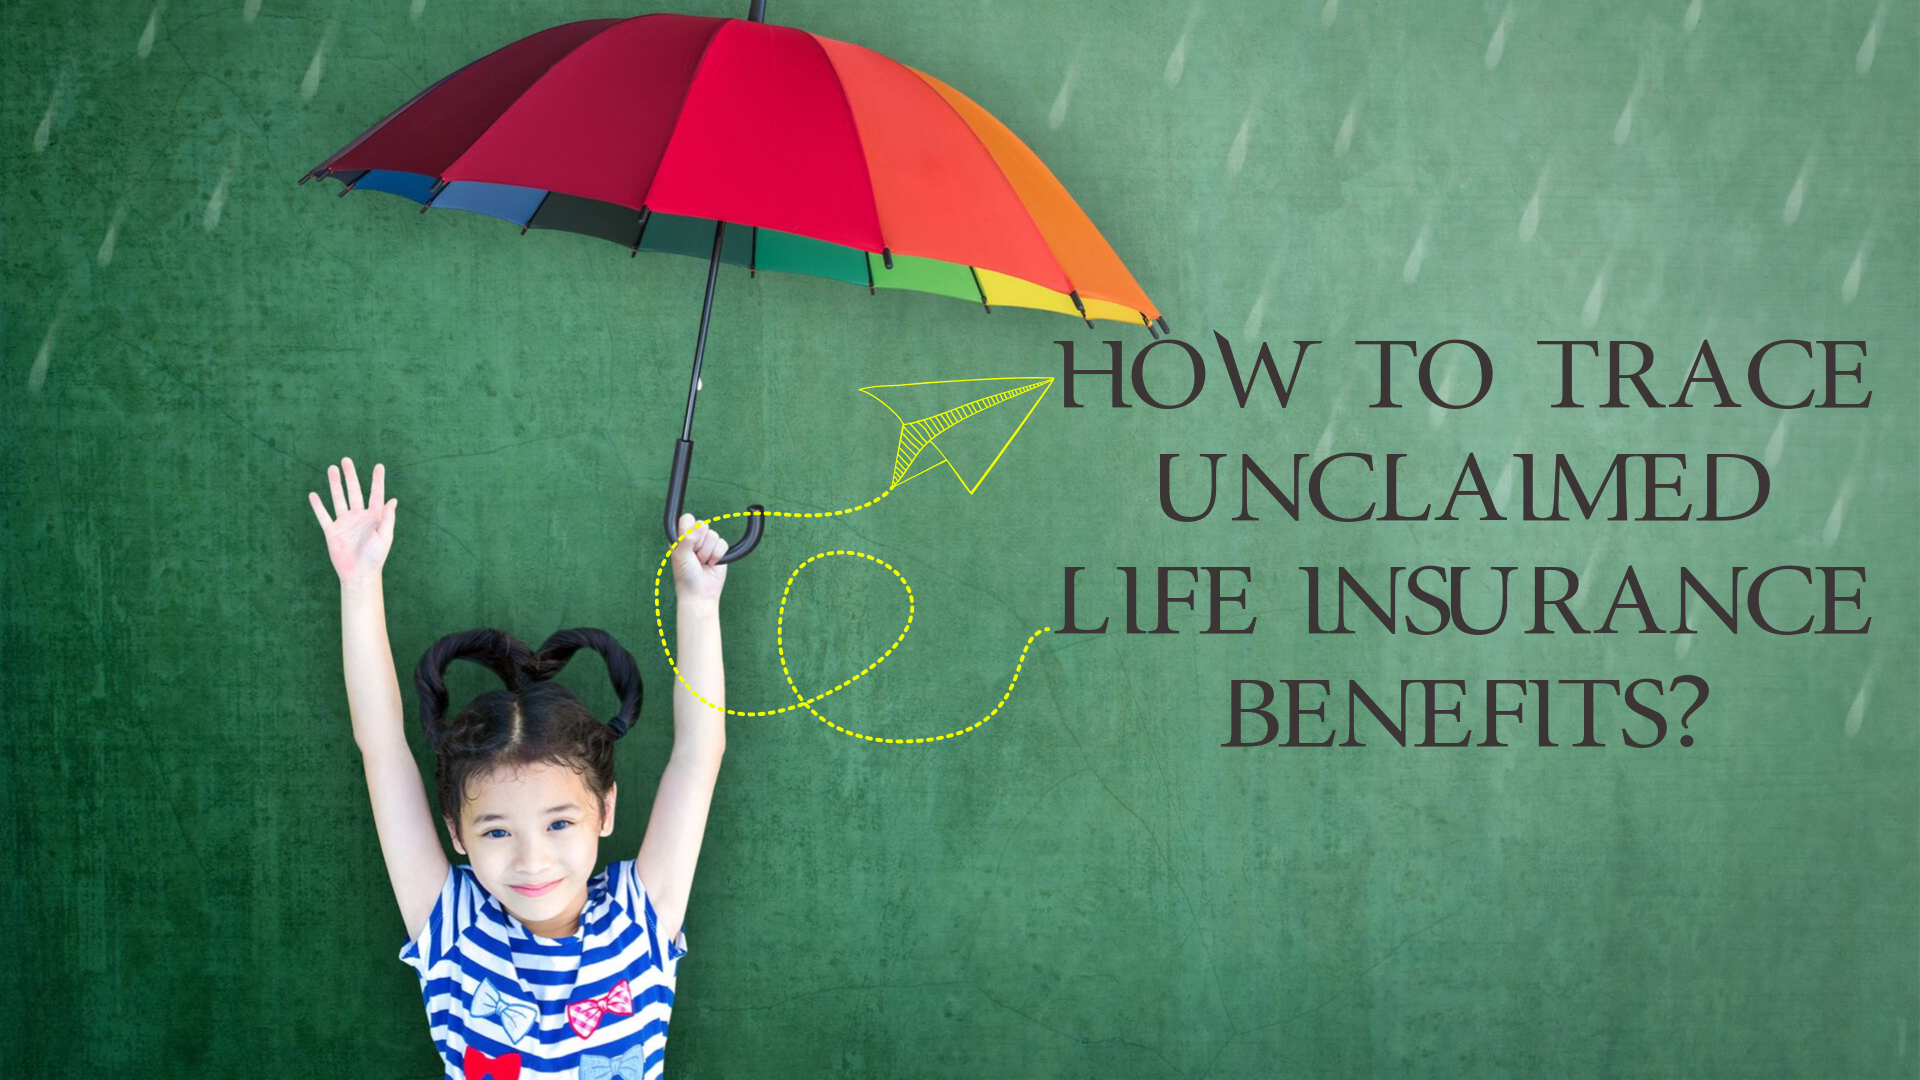 How to Track Unclaimed Life Insurance Benefits?